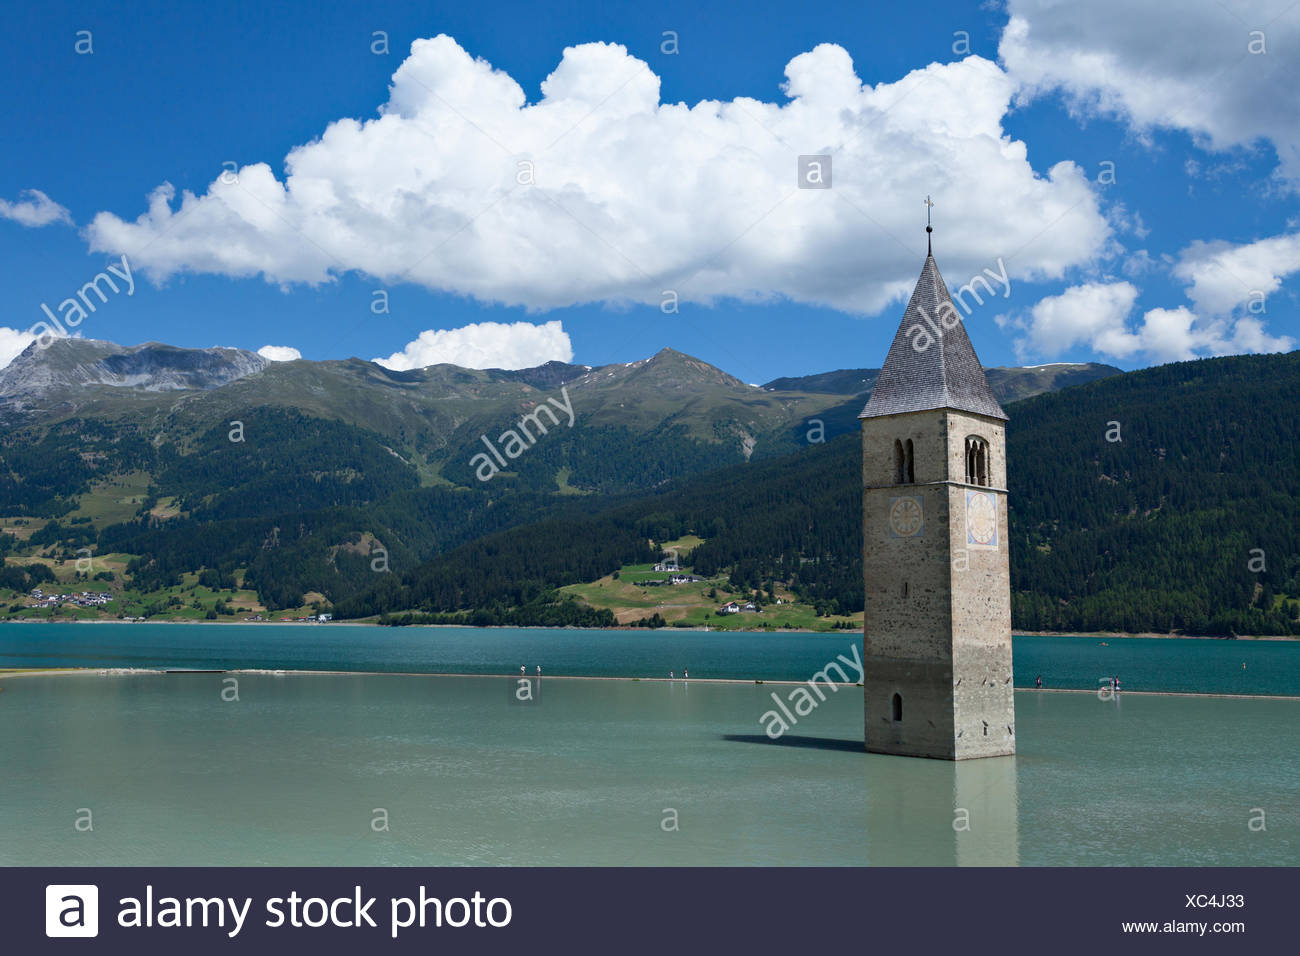 Tower at Reschenlake - Stock Image